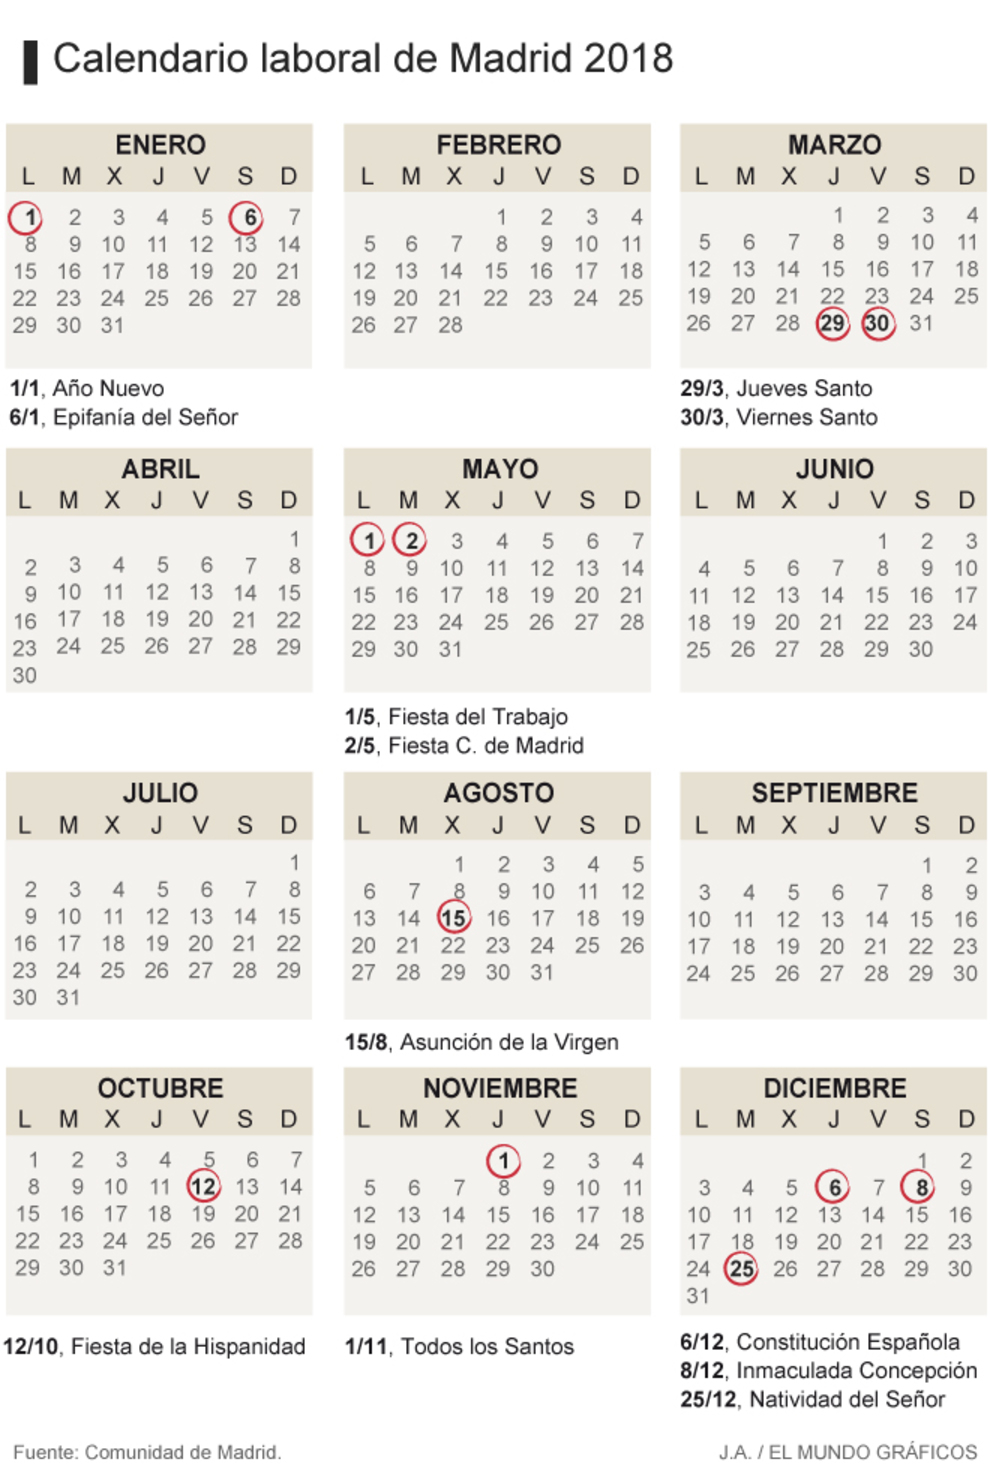 Calendario laboral de Madrid 2018